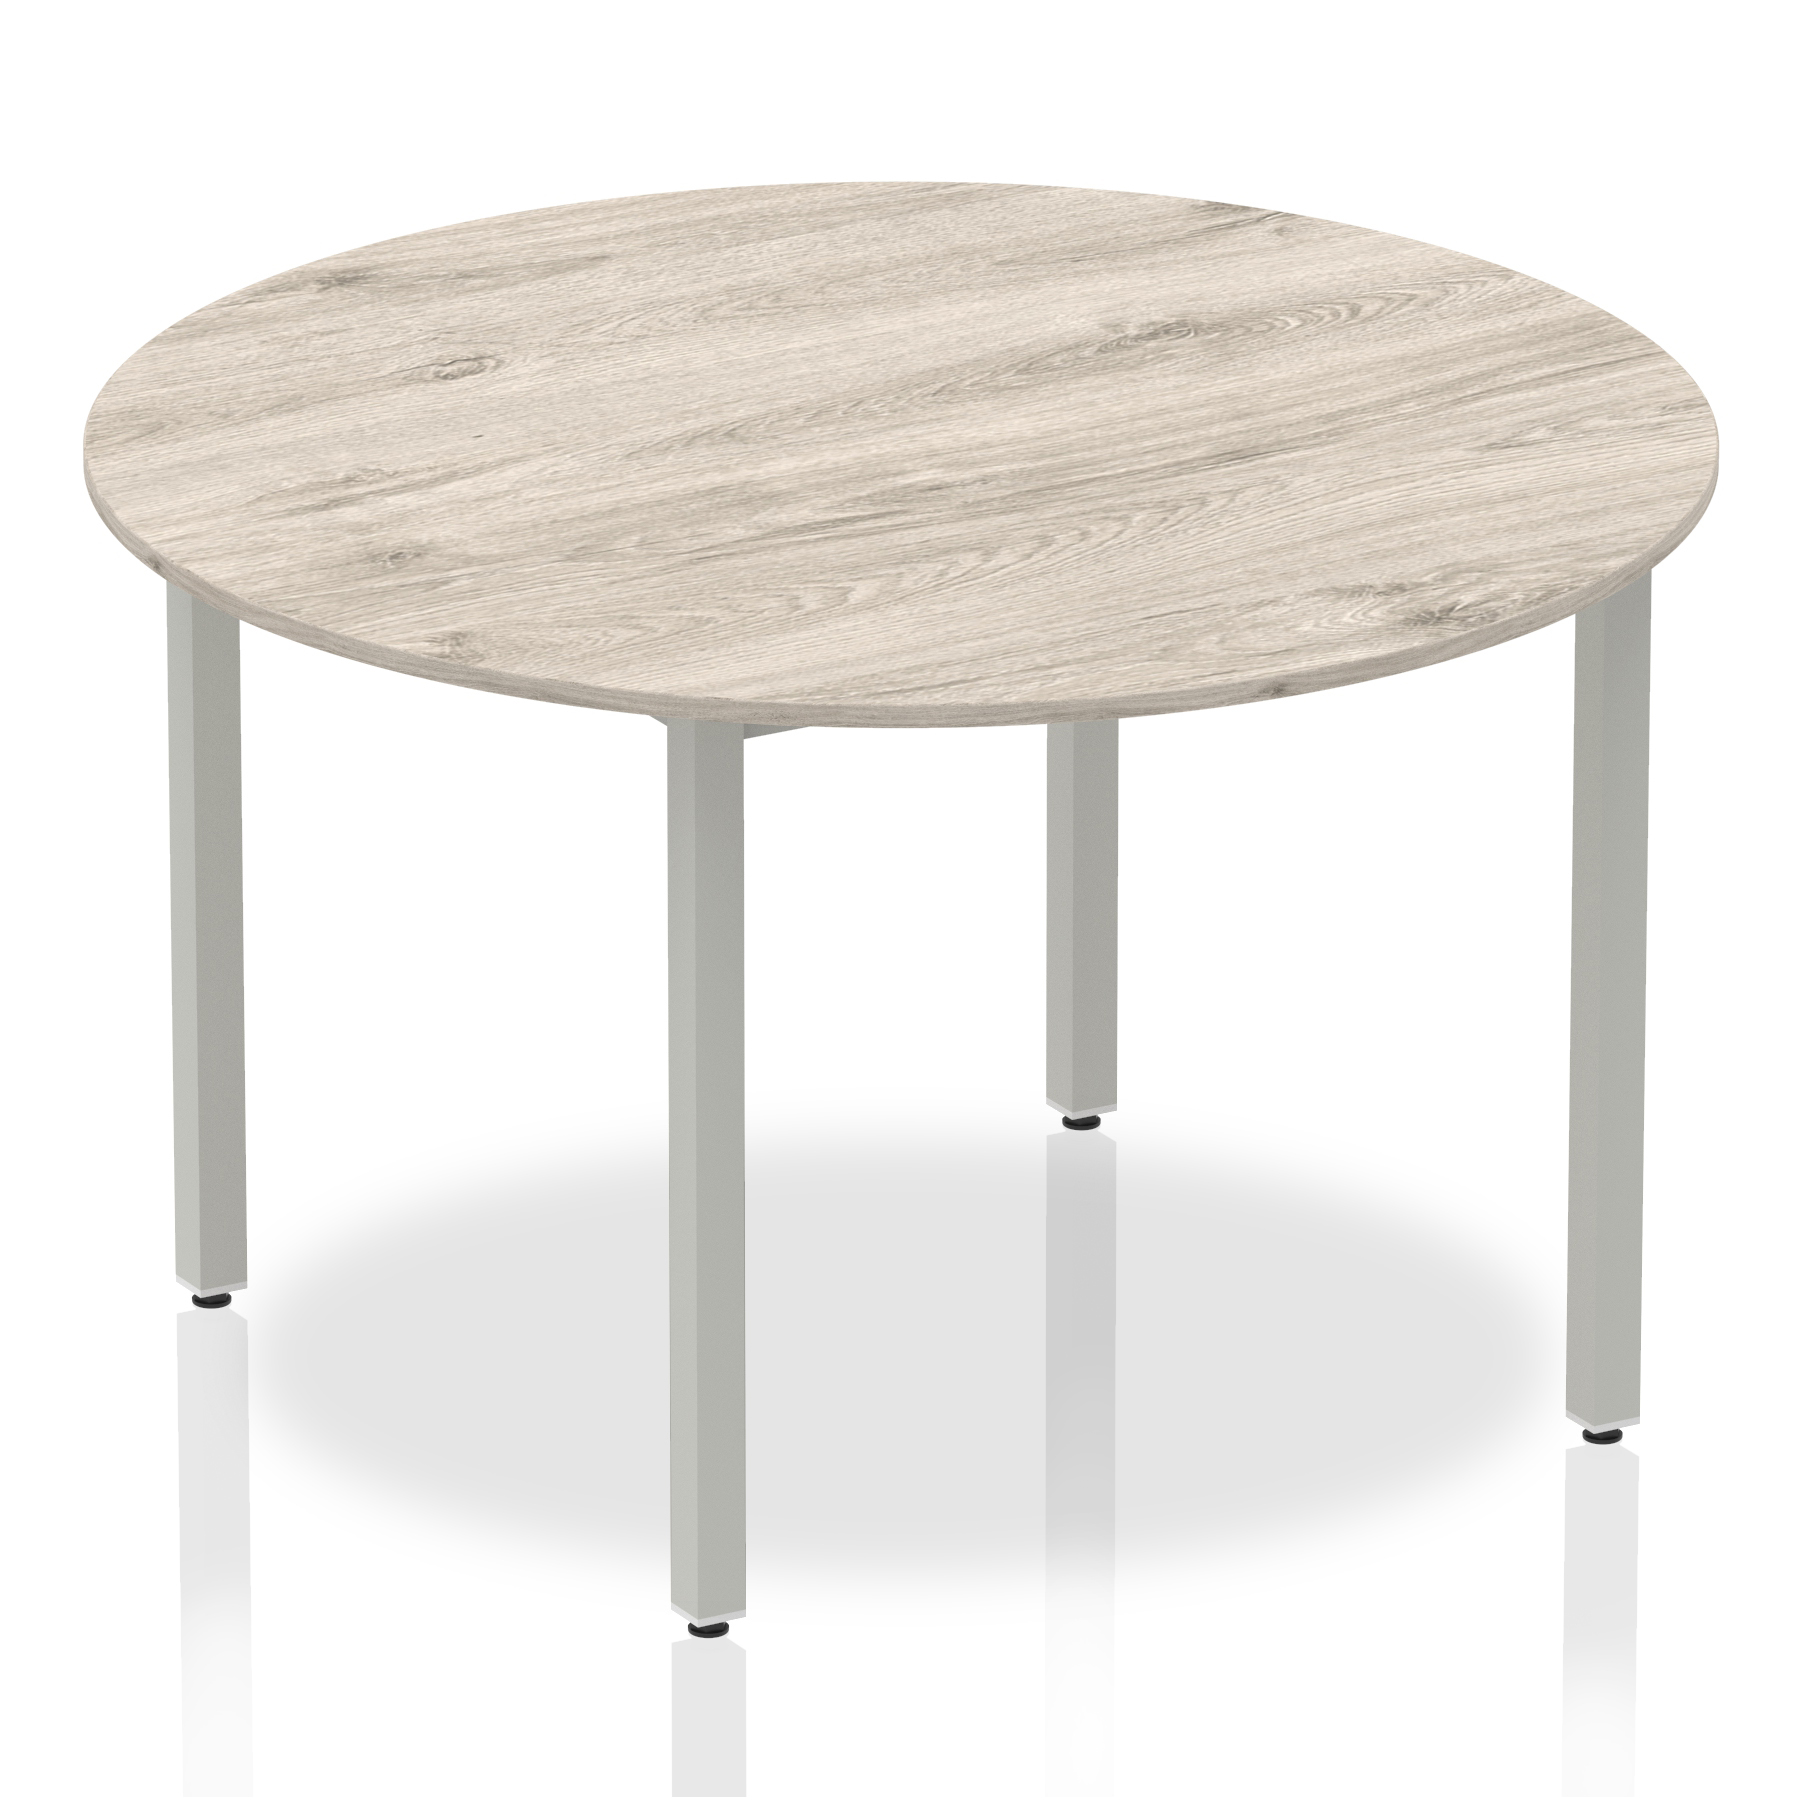 Grey Oak Circular Box Frame Table